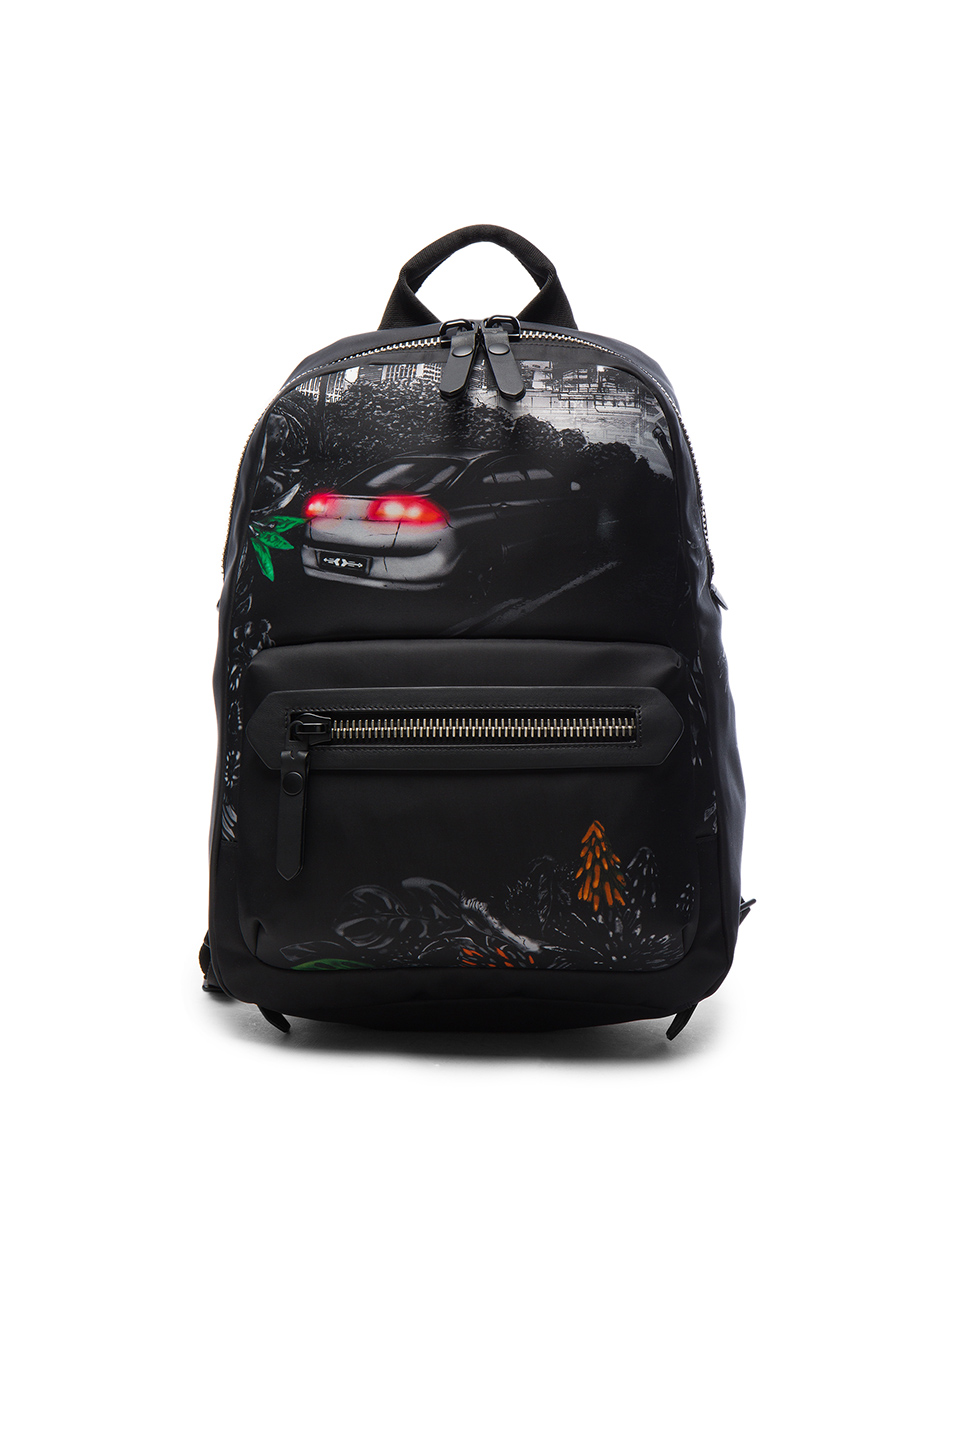 Lanvin Backpack in Black